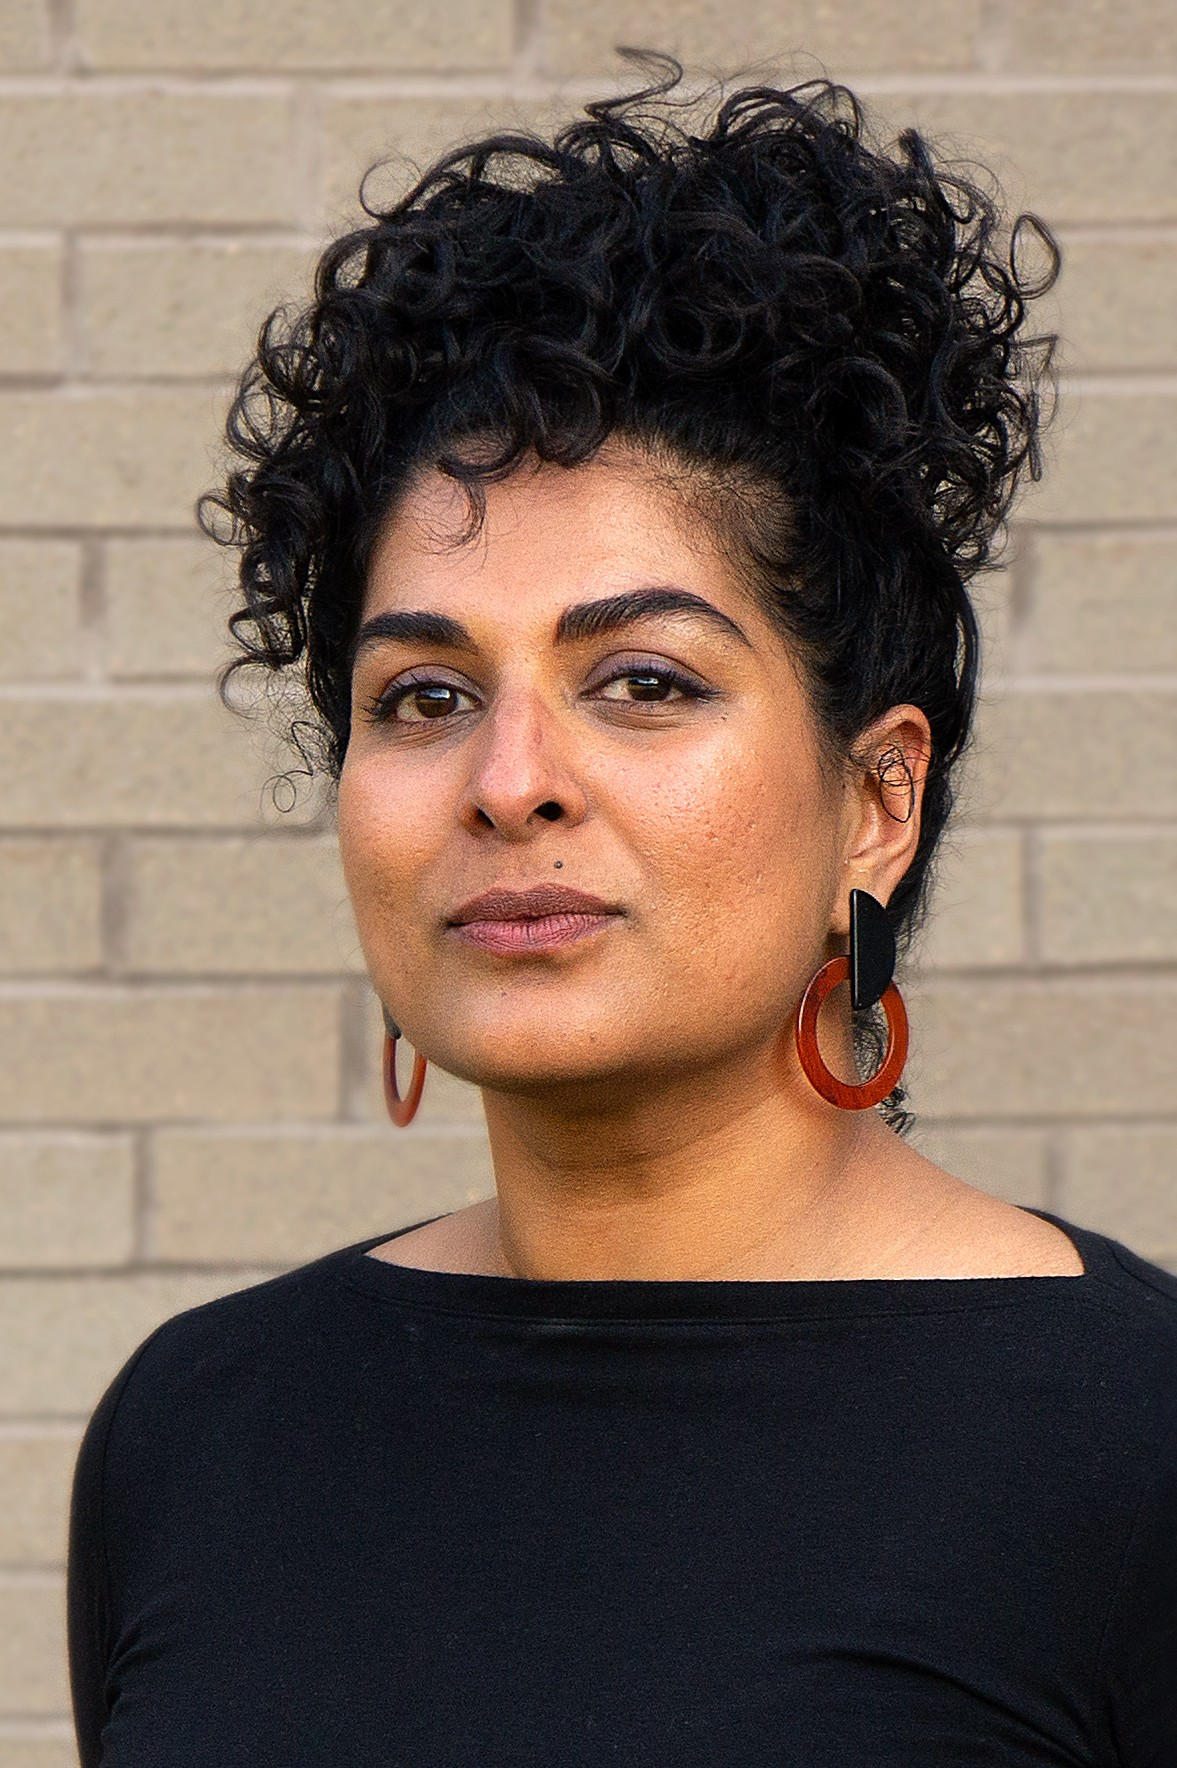 Divya Victor faces the camera in front of a brick wall, wearing a black shirt and red hoop earrings.